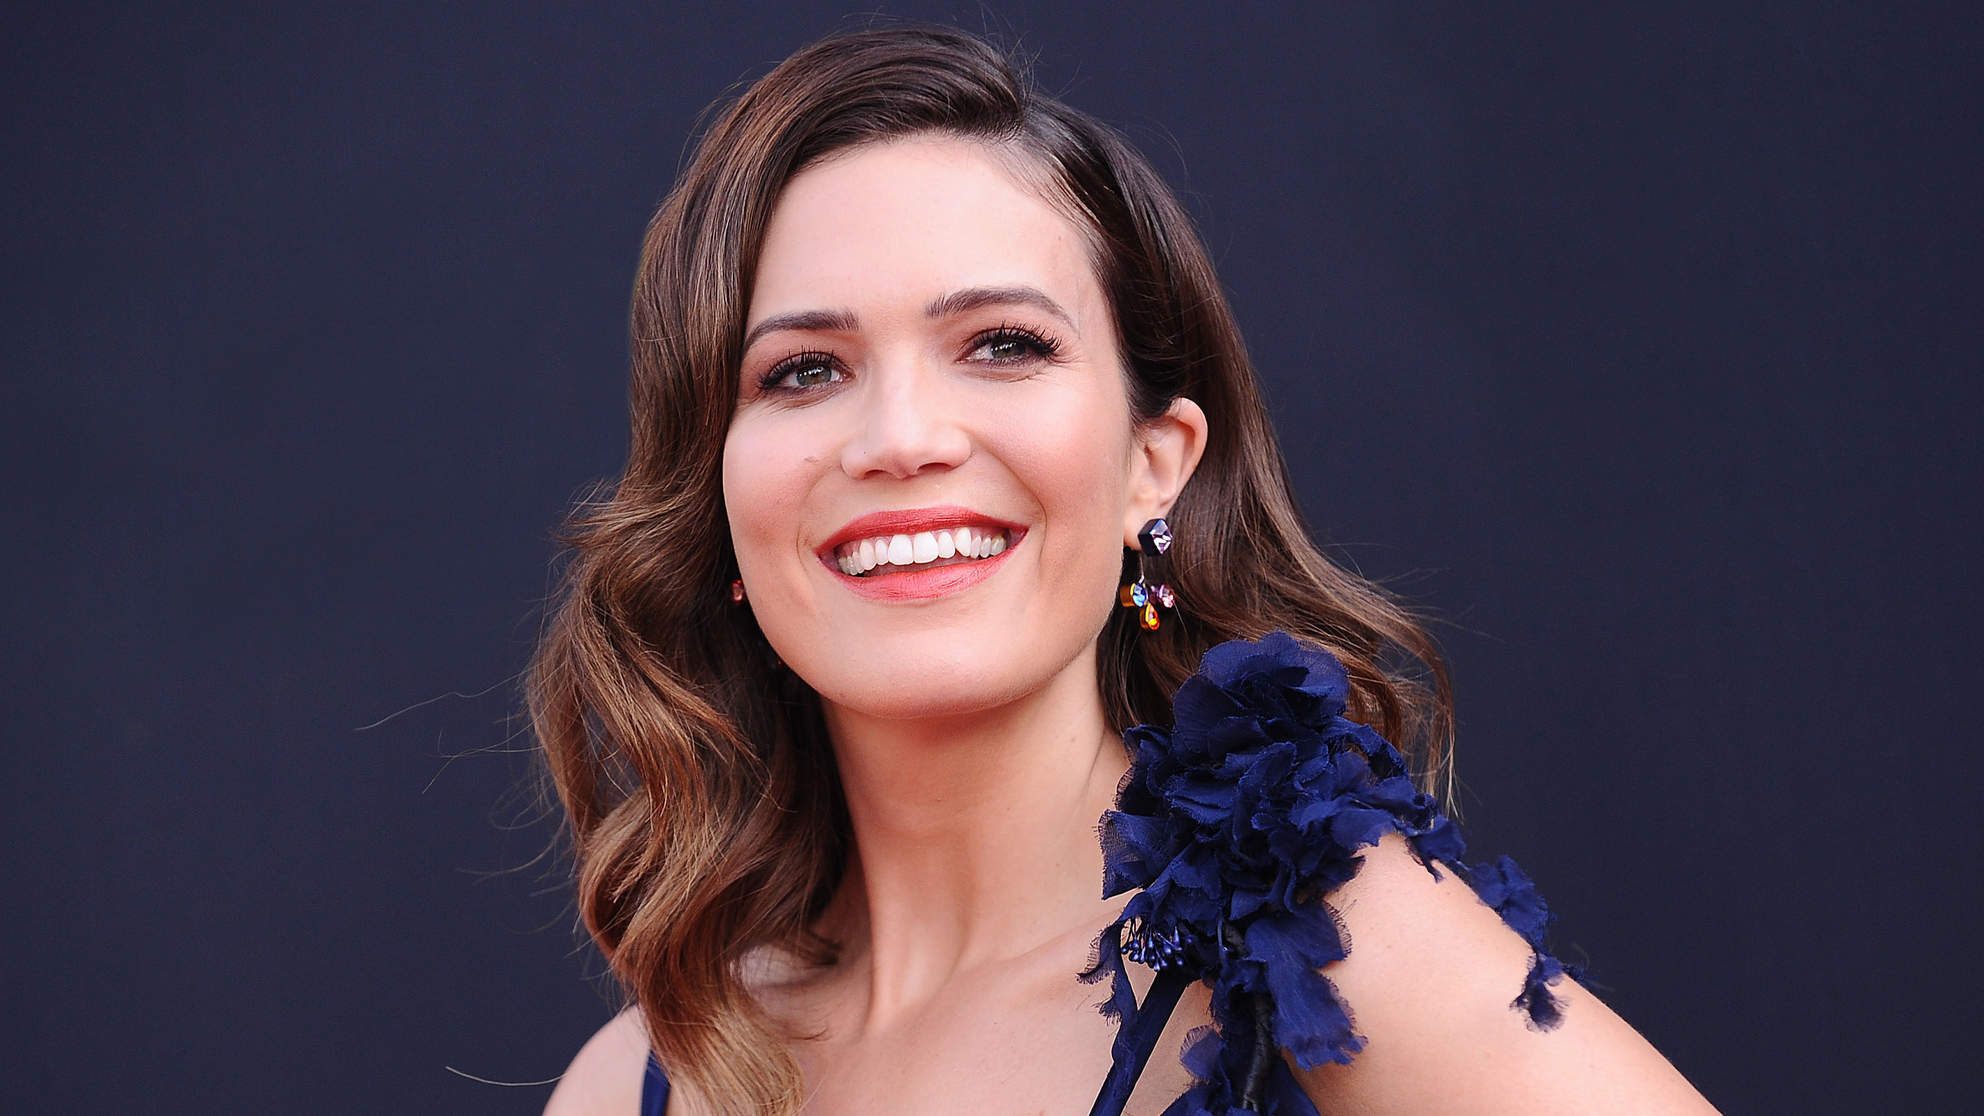 Mandy Moore Fulfills Dream of Climbing Mt. Kilimanjaro with Fiancé Taylor Goldsmith by Her Side